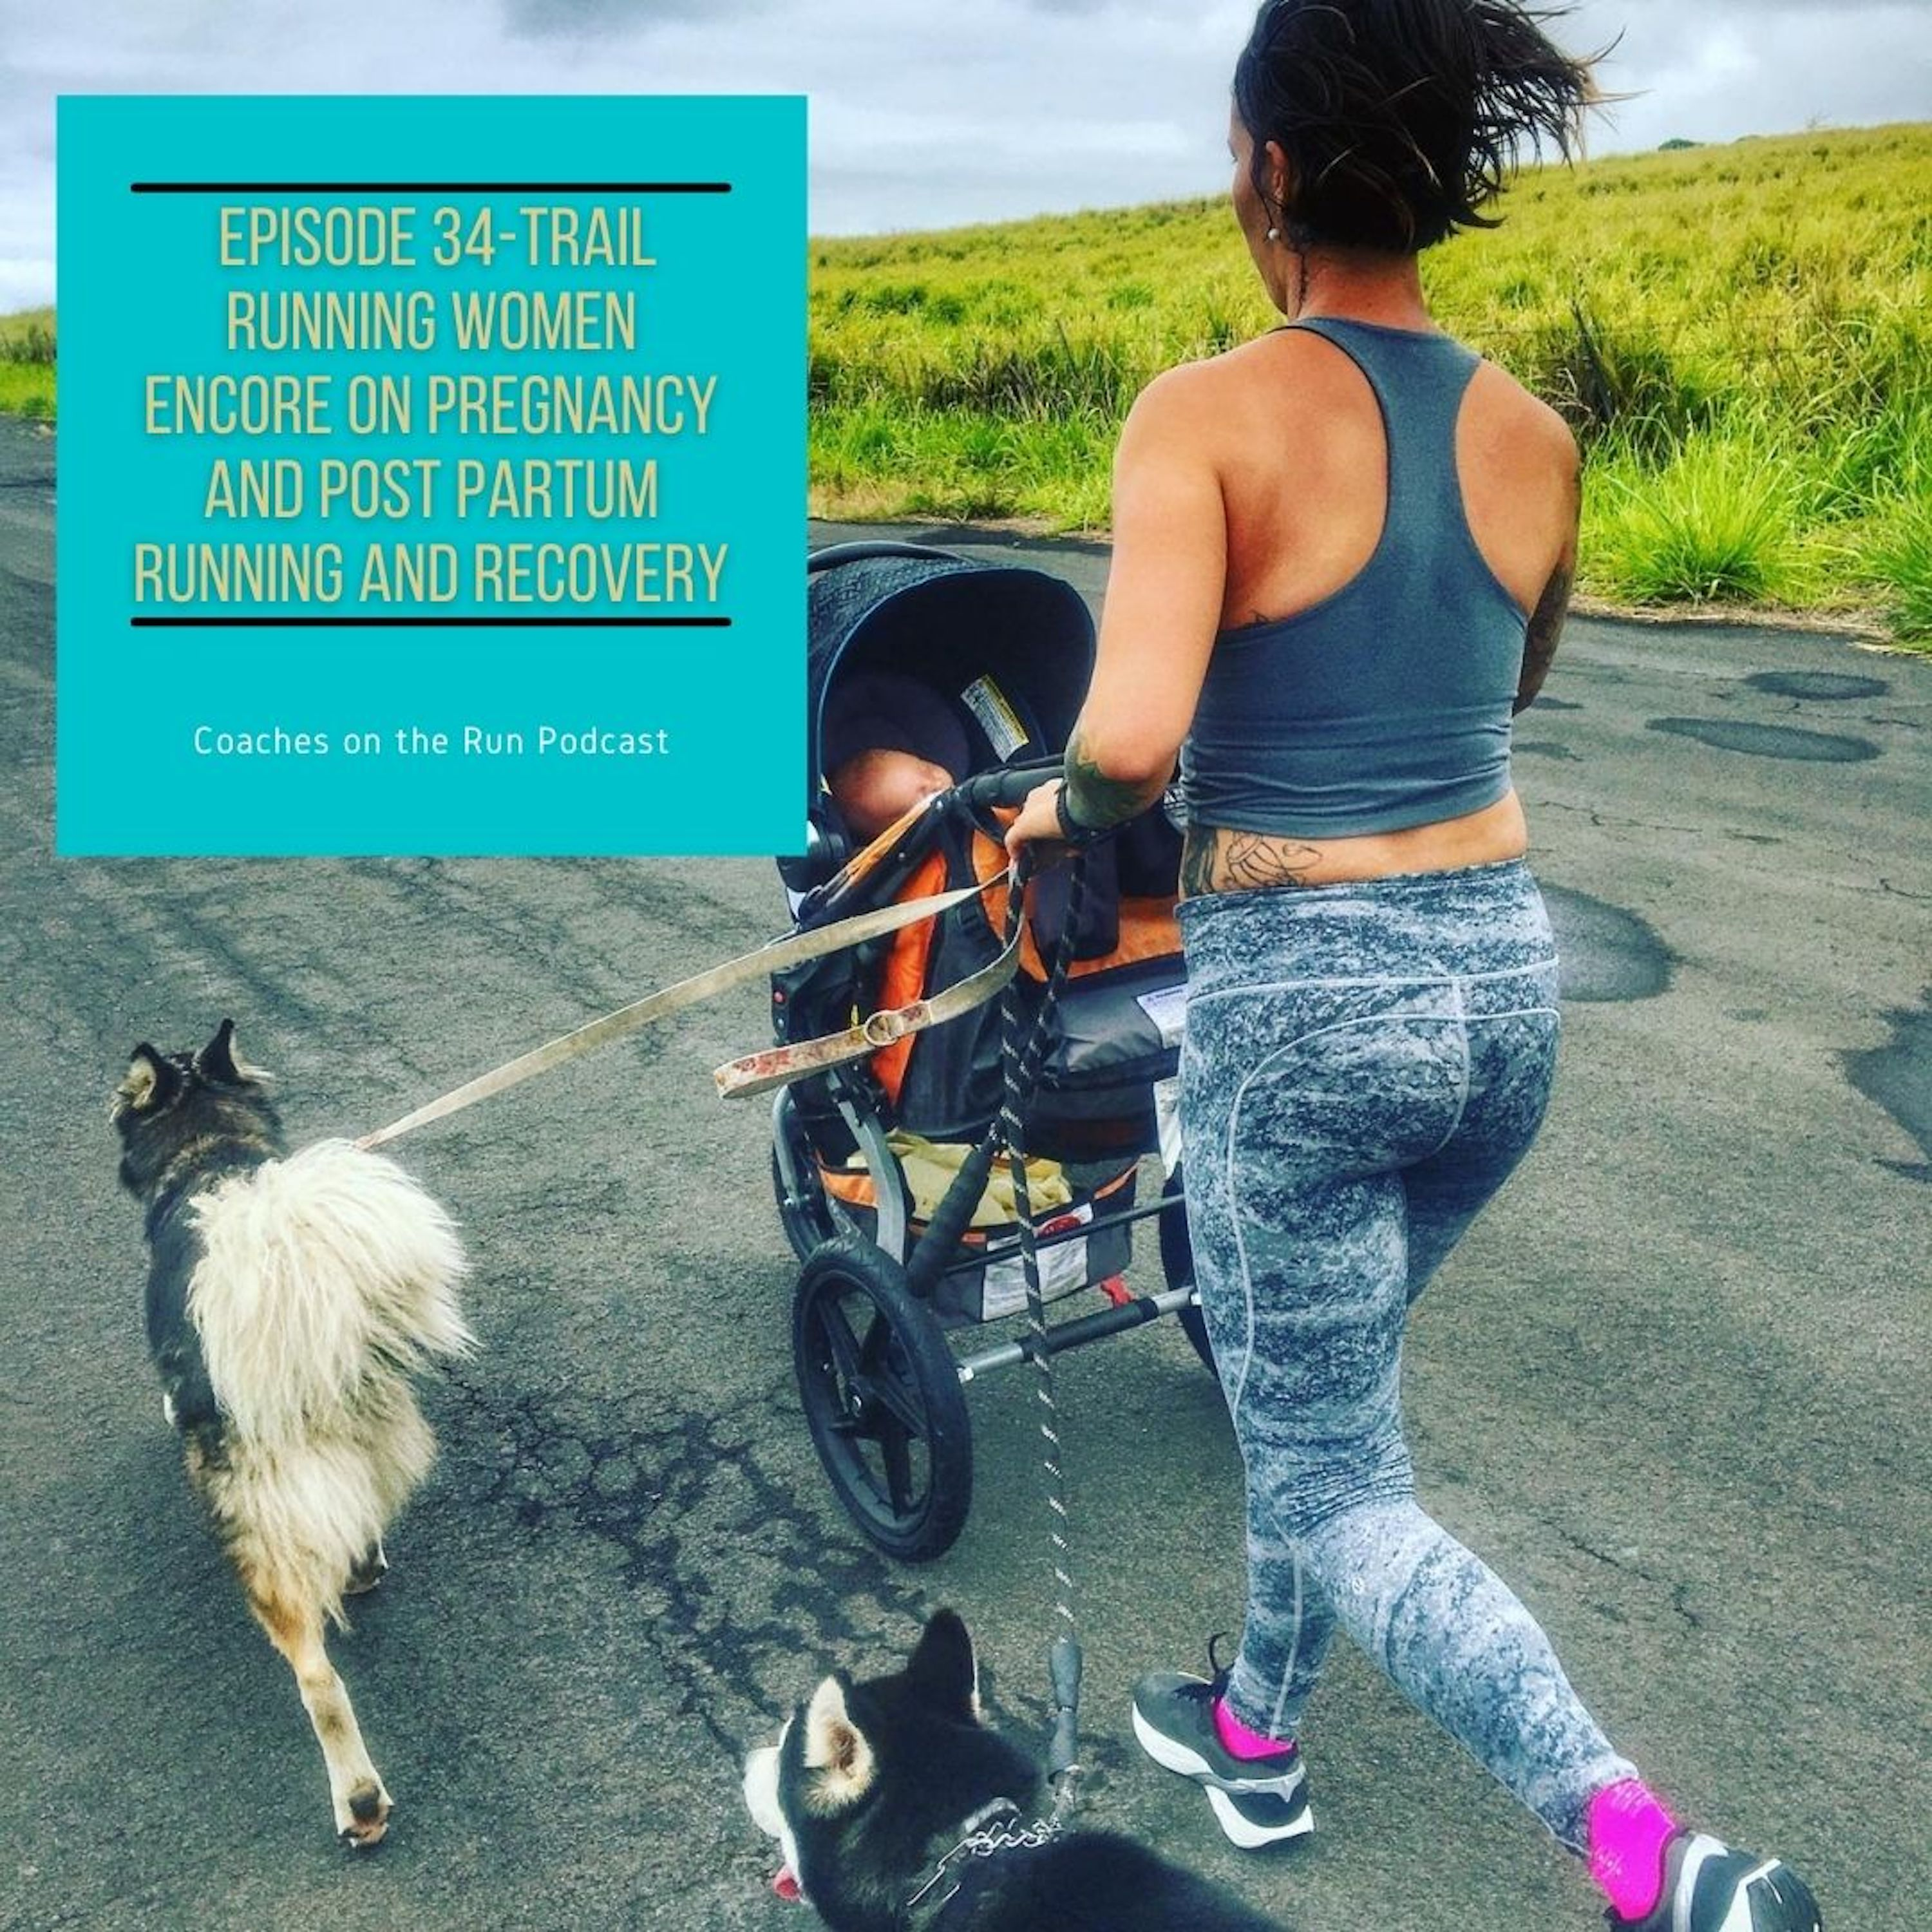 Trail Running Women Encore on Pregnancy and Postpartum Running and Recovery